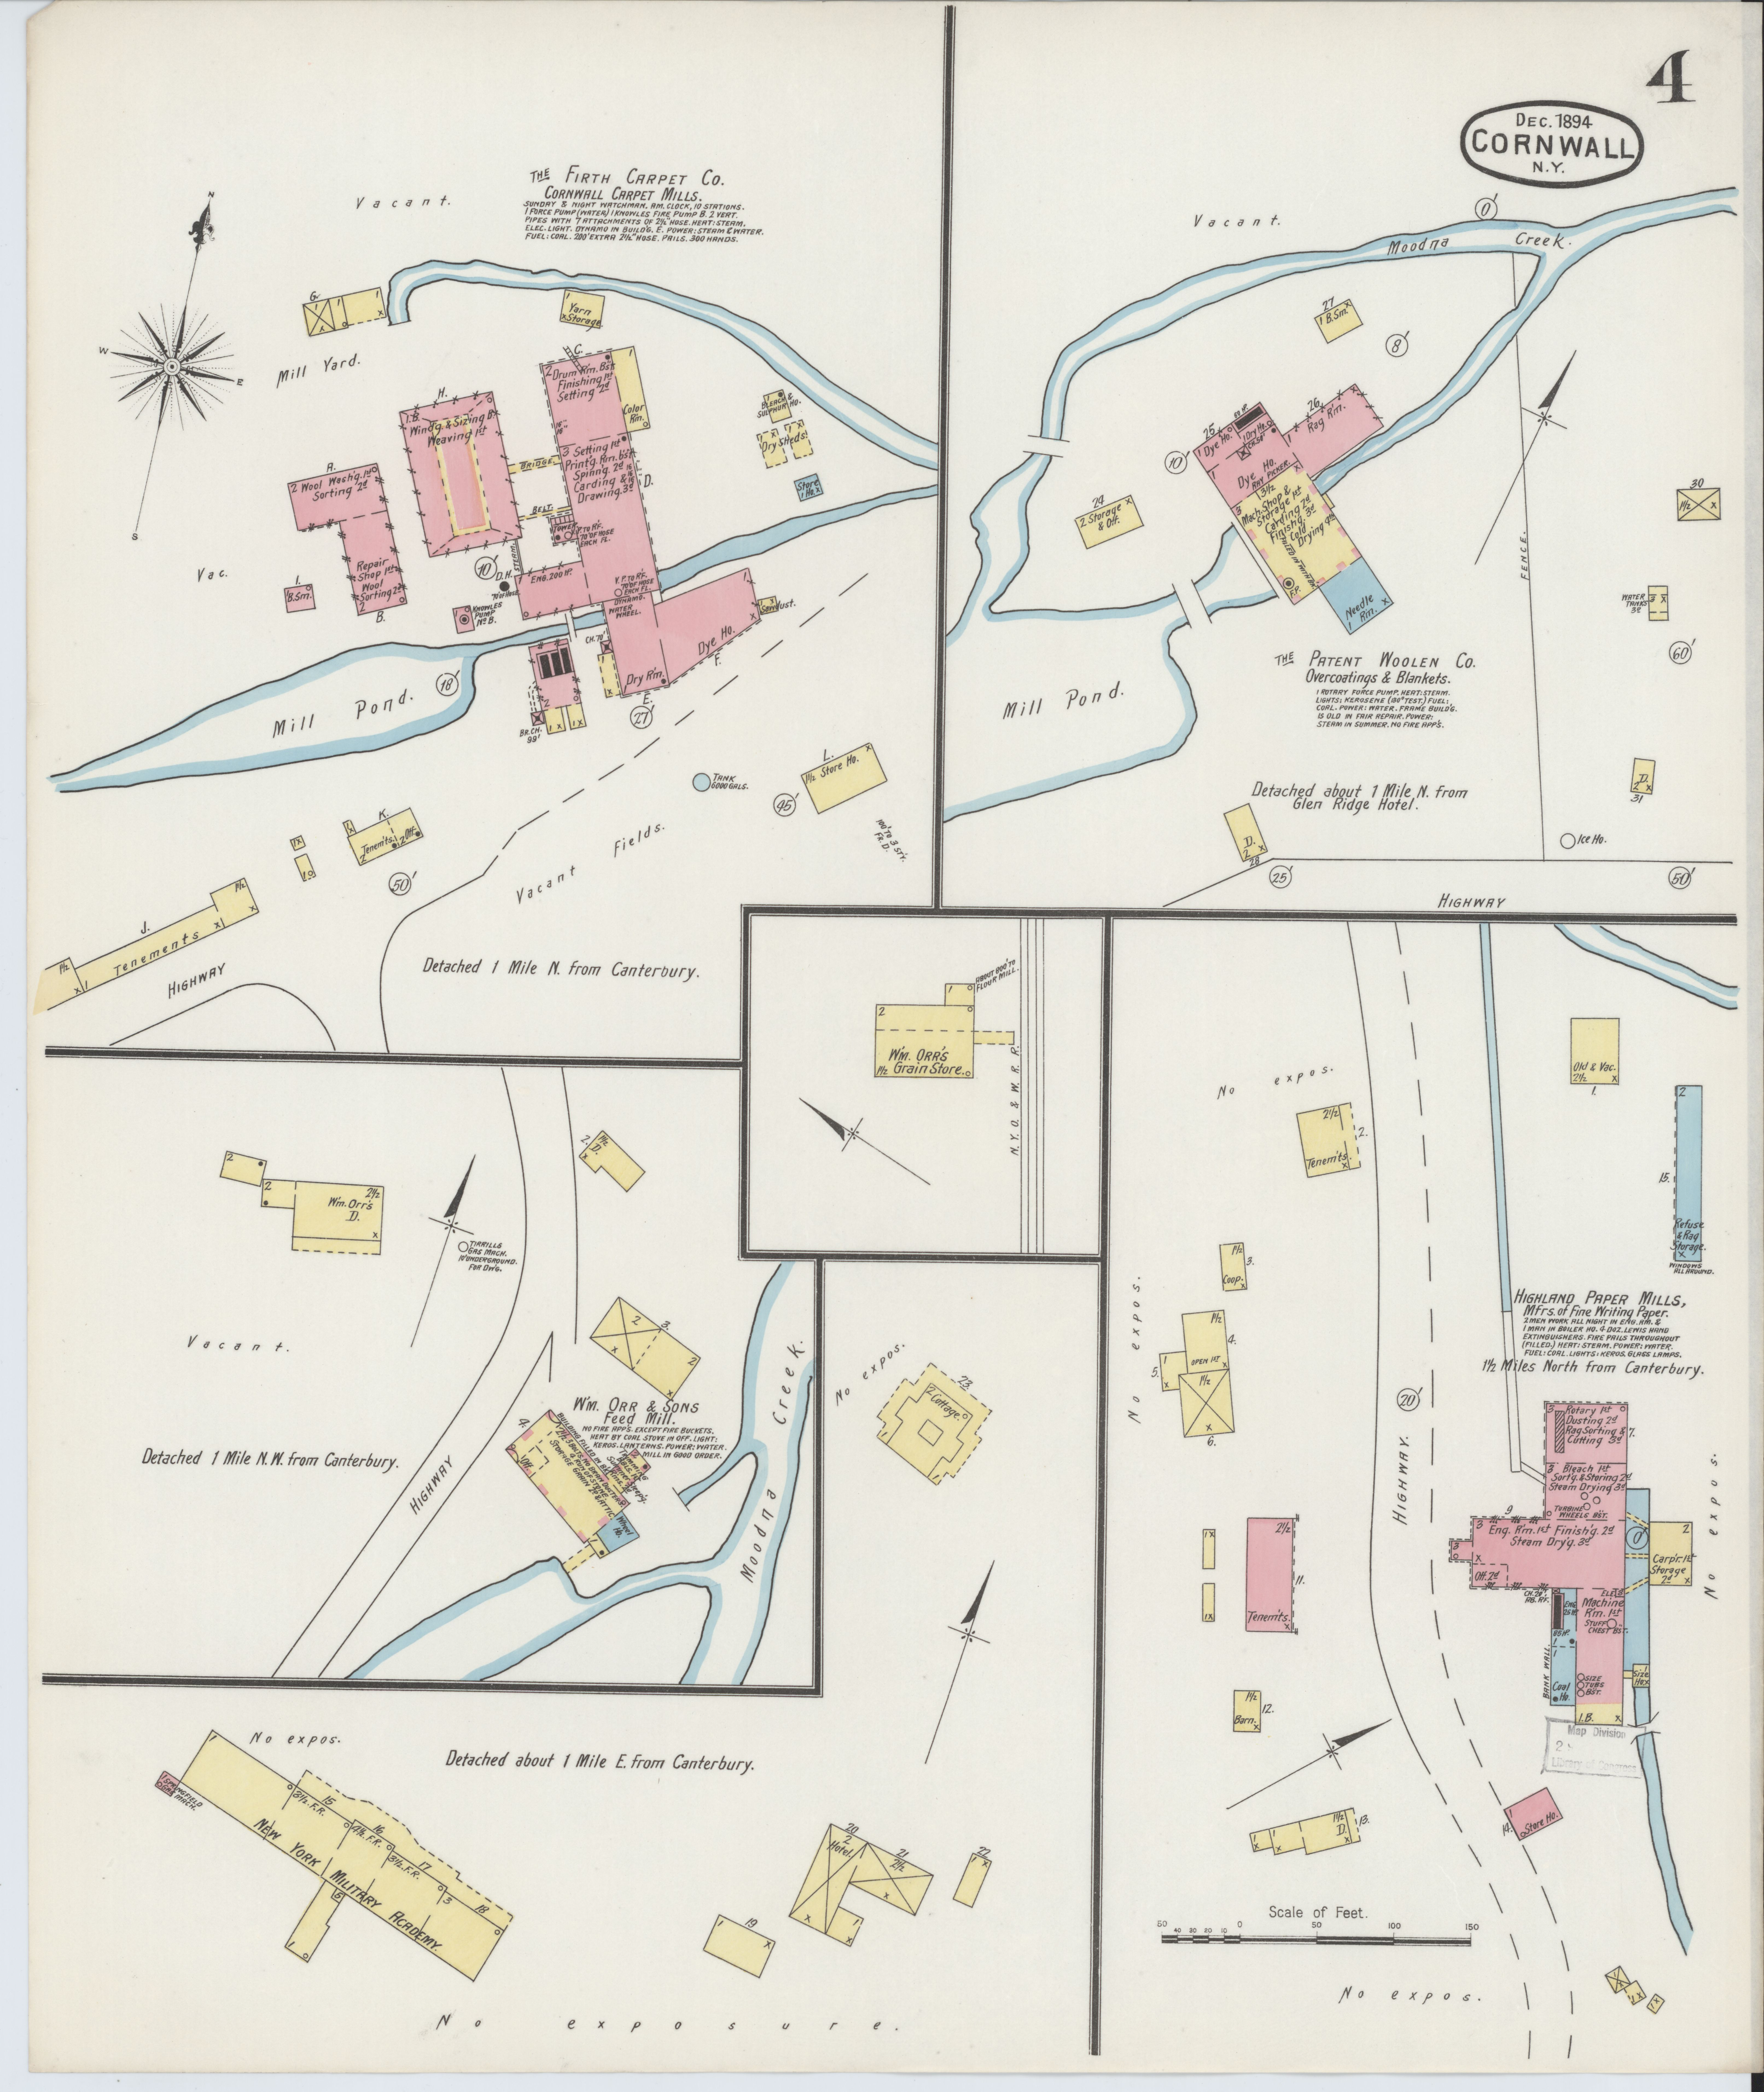 Map Of New York 2001.File Sanborn Fire Insurance Map From Cornwall Orange County New